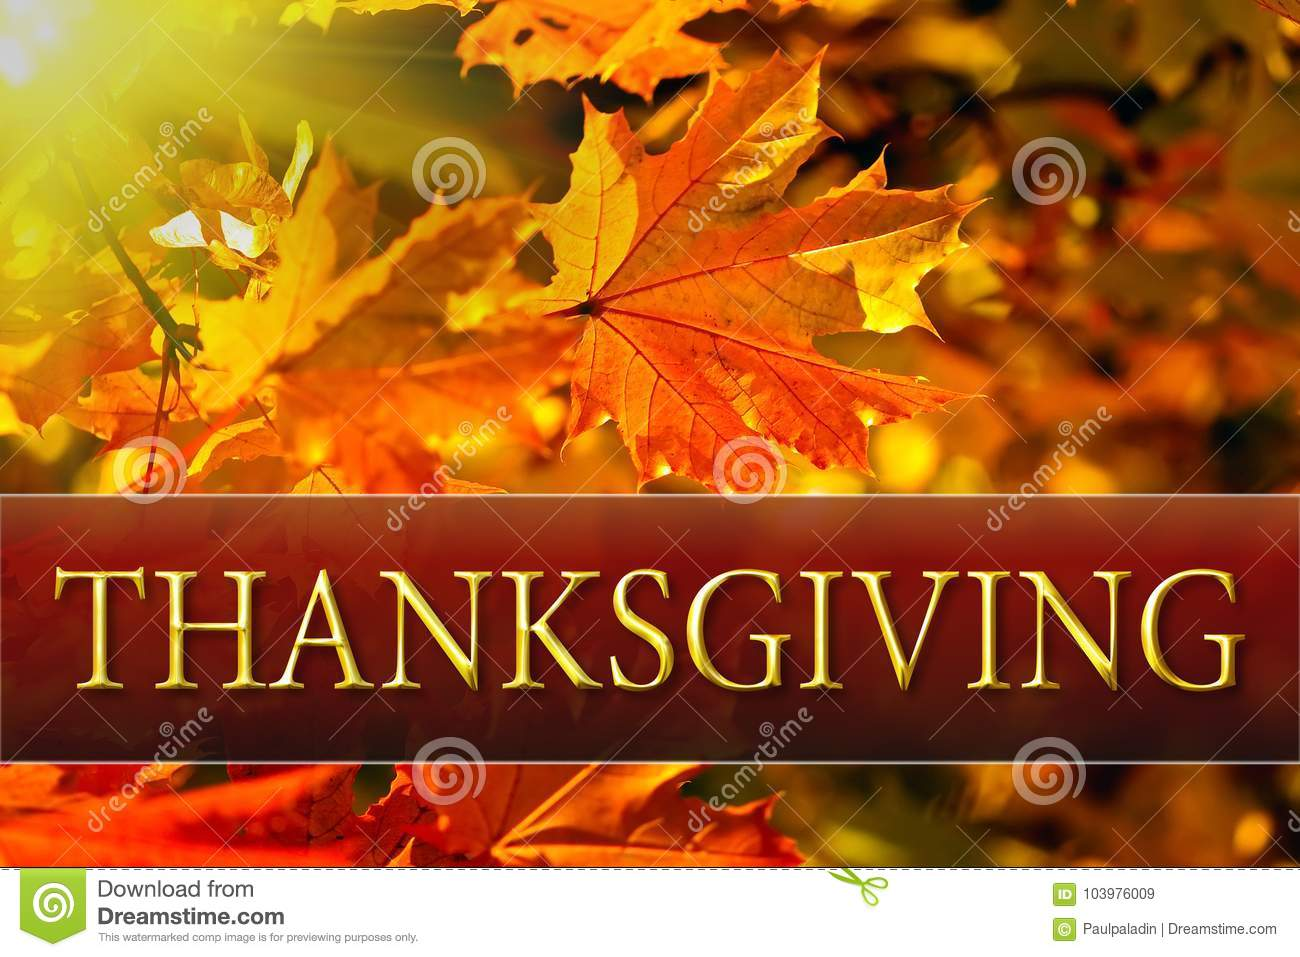 Happy thanksgiving greeting card message stock image image of happy thanksgiving greeting card message m4hsunfo